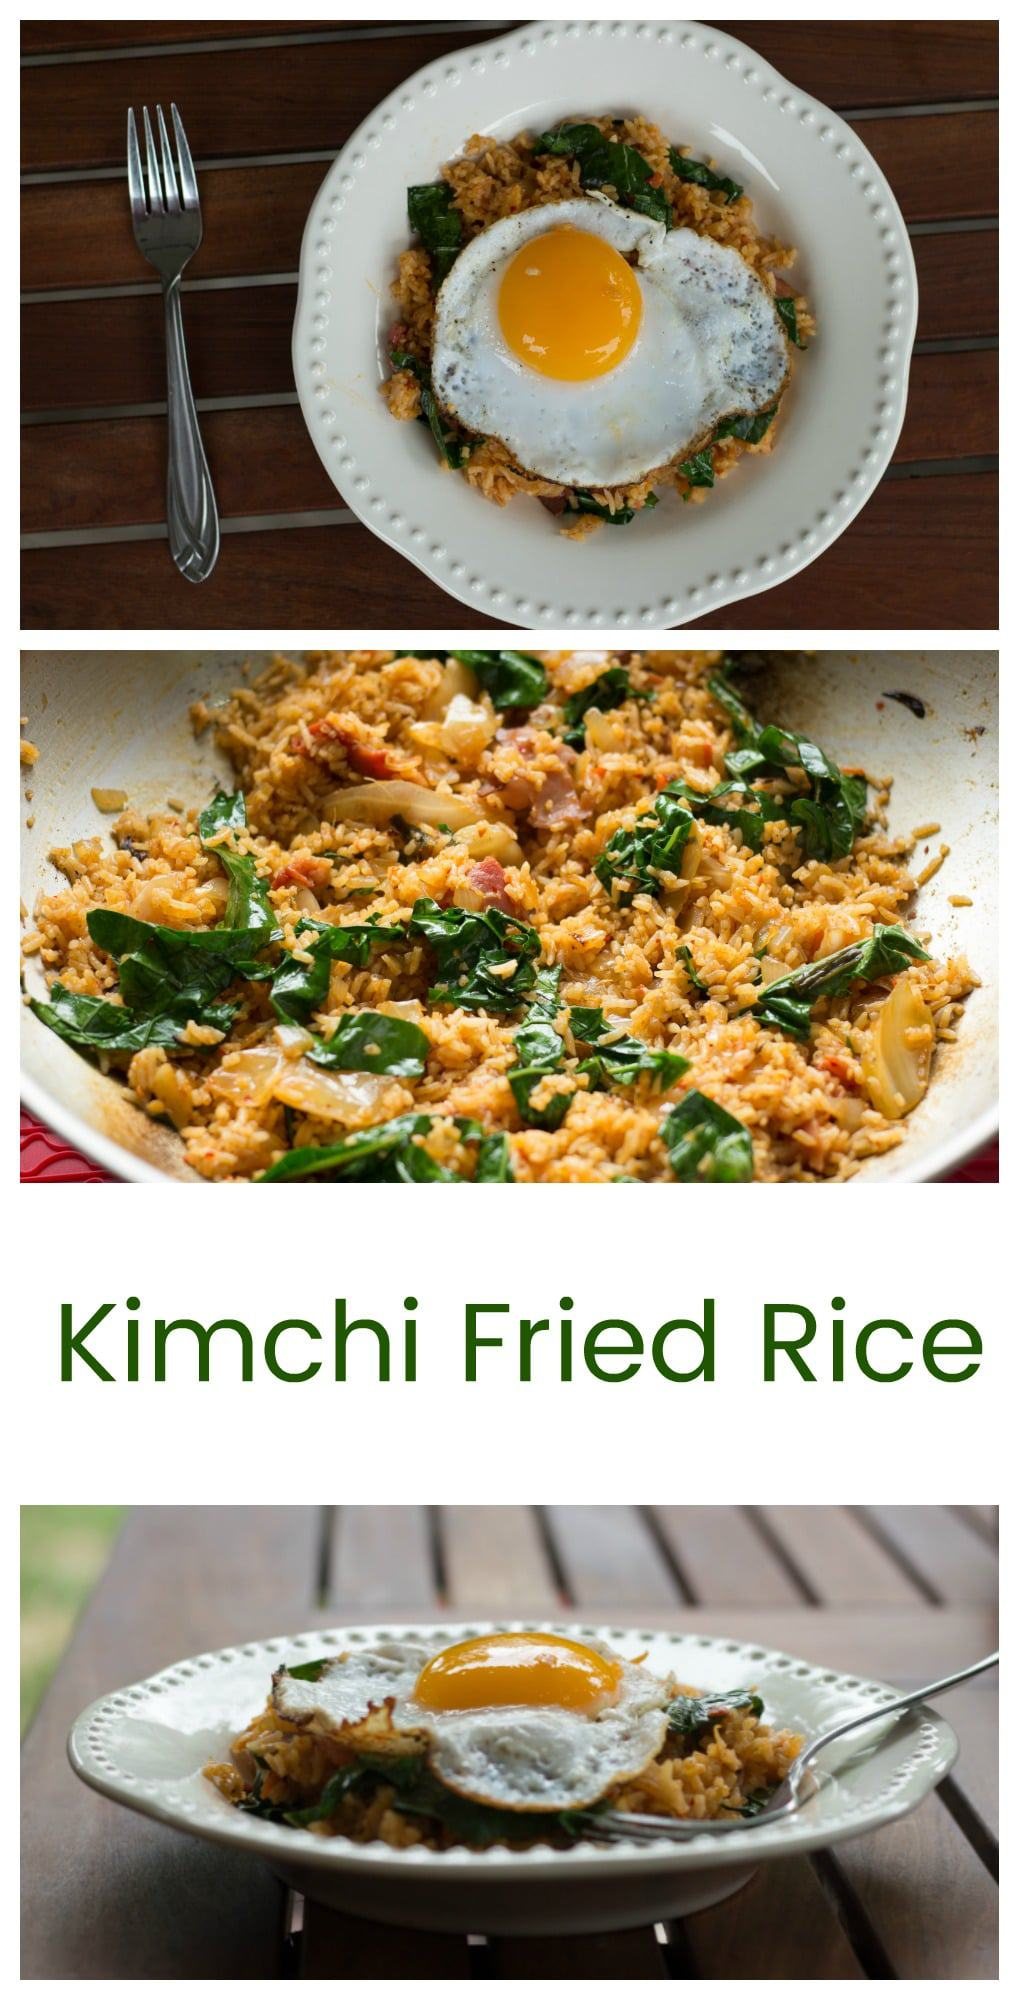 Kimchi Fried Rice With Kale || Erin Brighton | vegetarian | gluten free recipes | easy dinners